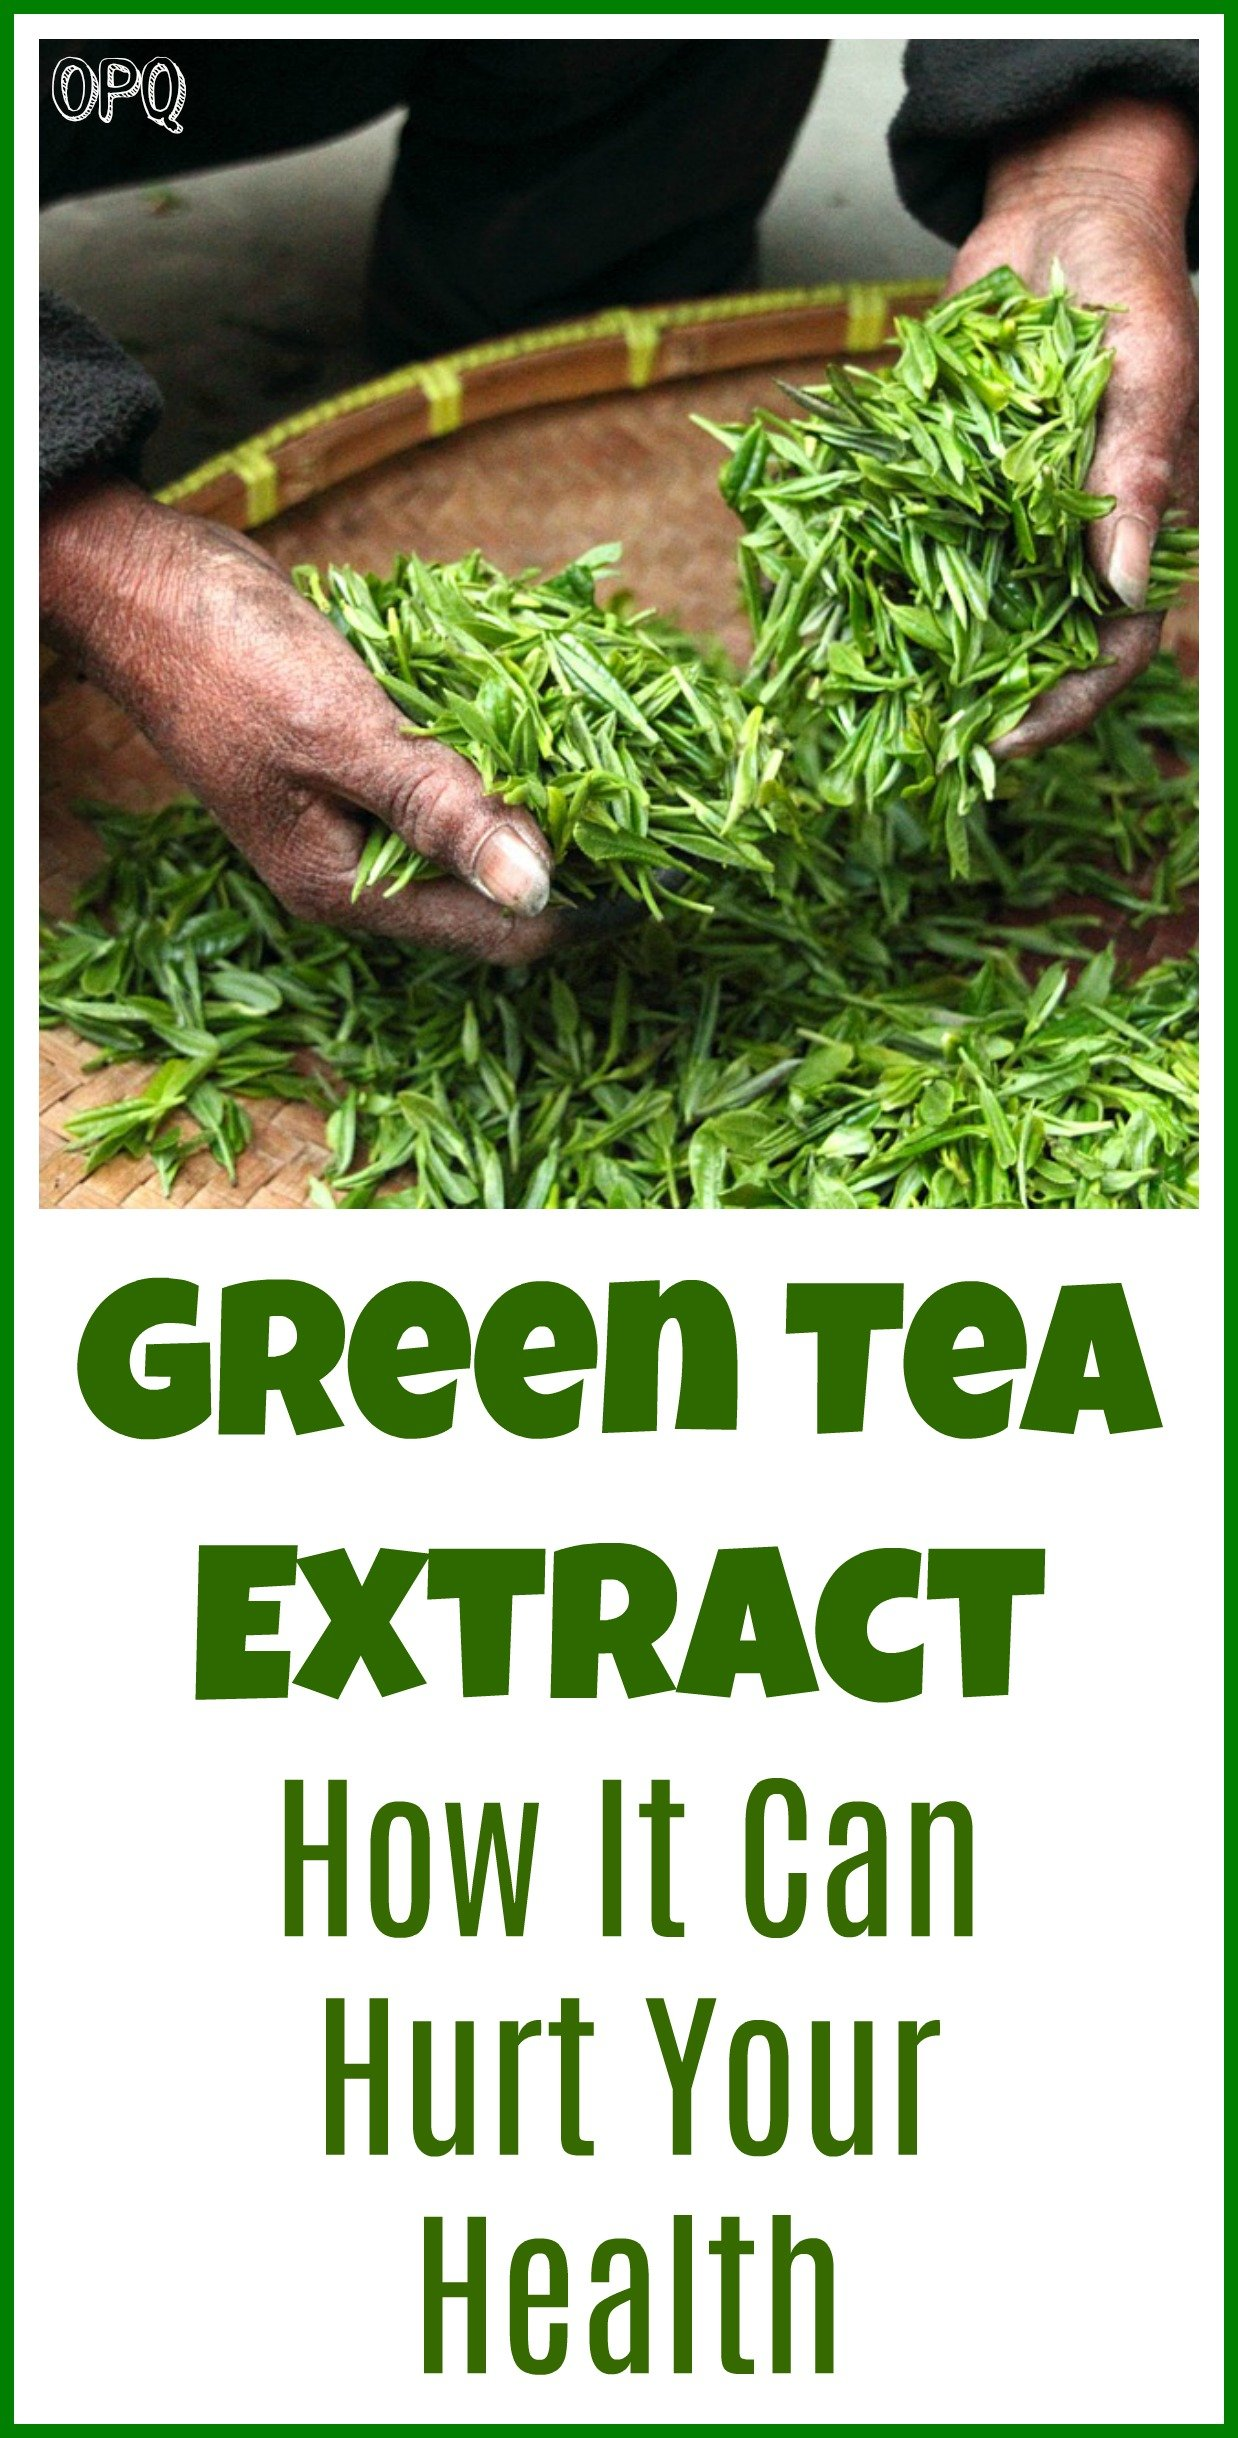 Warning on green tea extract